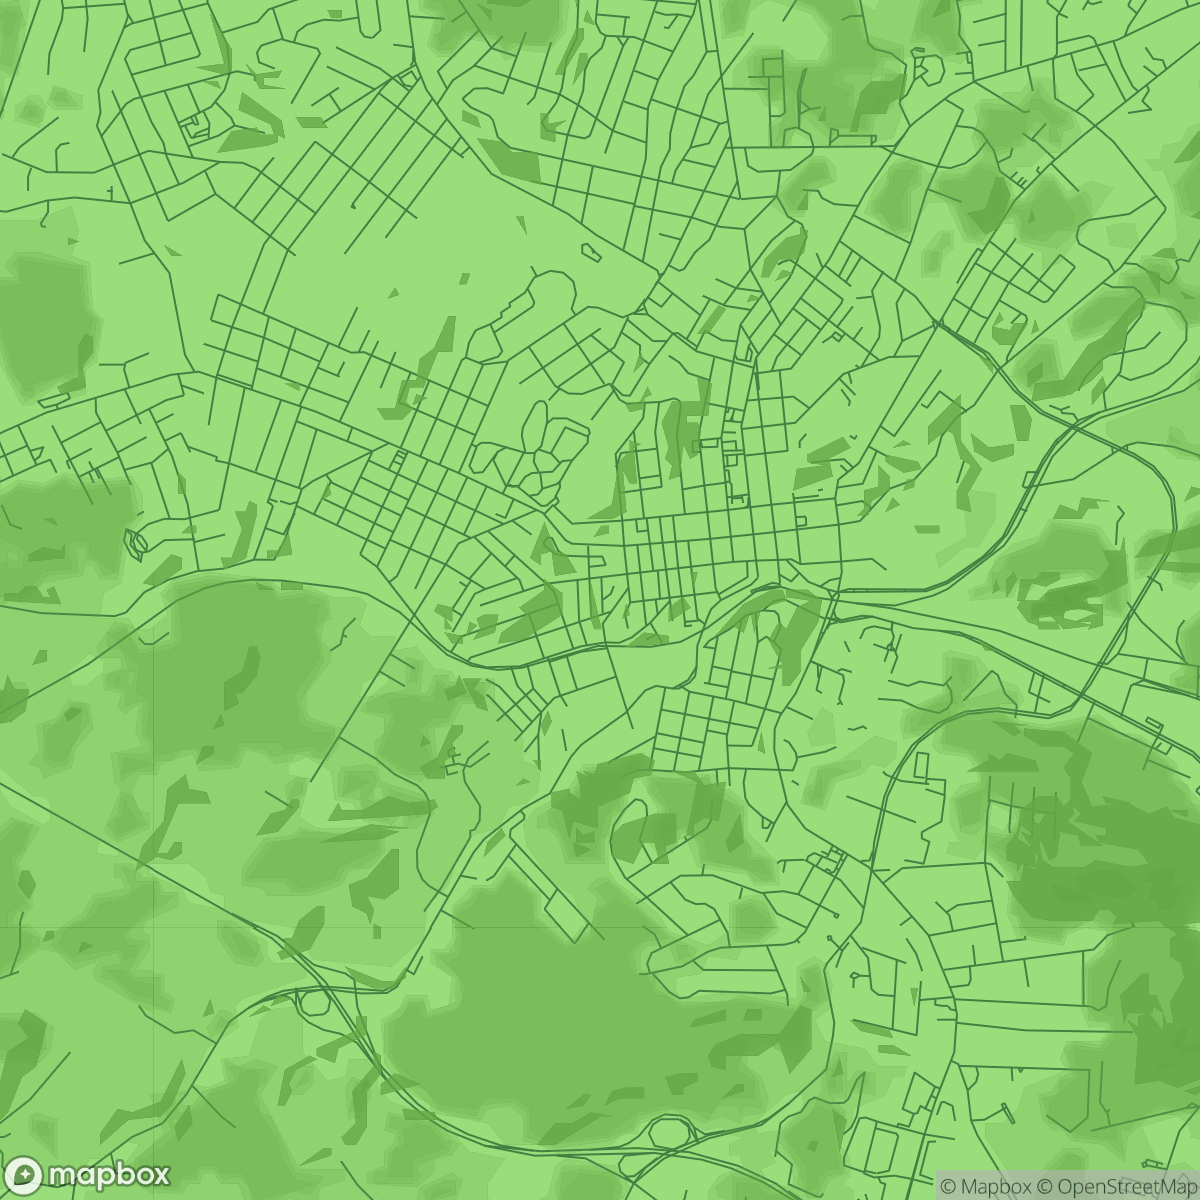 A closer view of the Staunton, VA Mapbox map